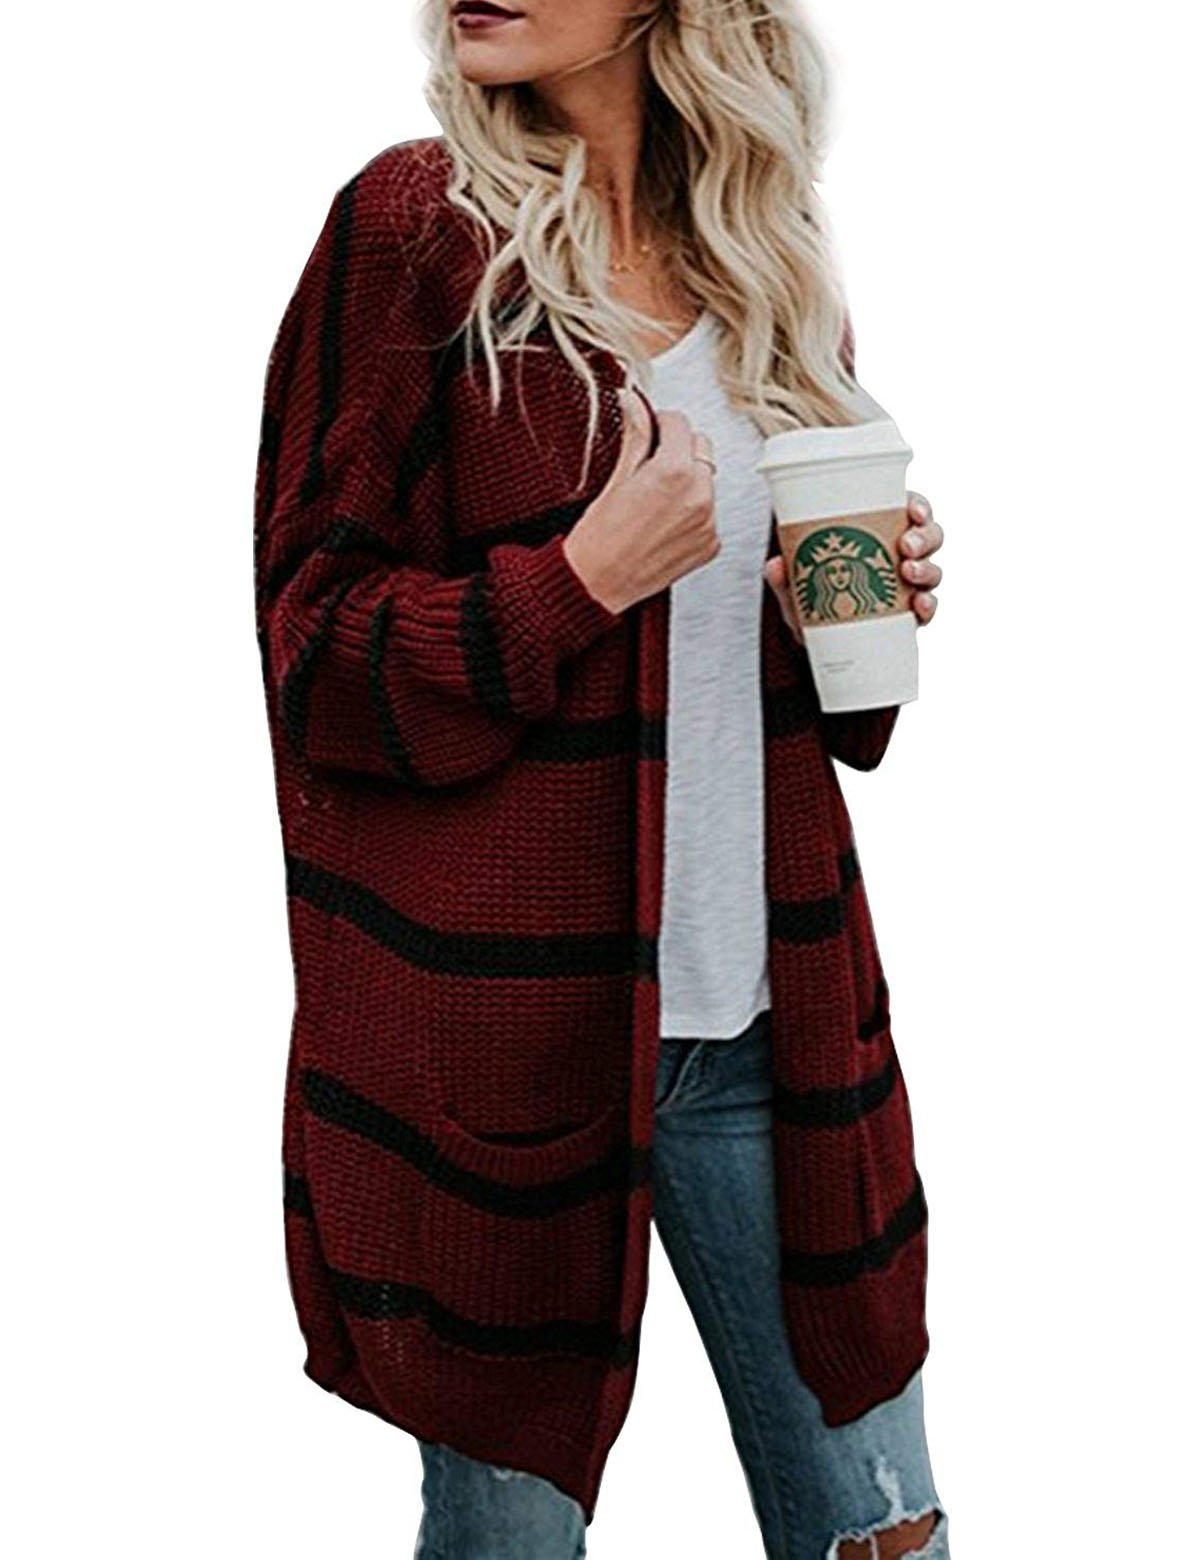 CXINS Women's Fashion Loose Open Front Striped Long Sleeve Knit Sweater Cardigan Coat with Pockets Size 3L Wine red